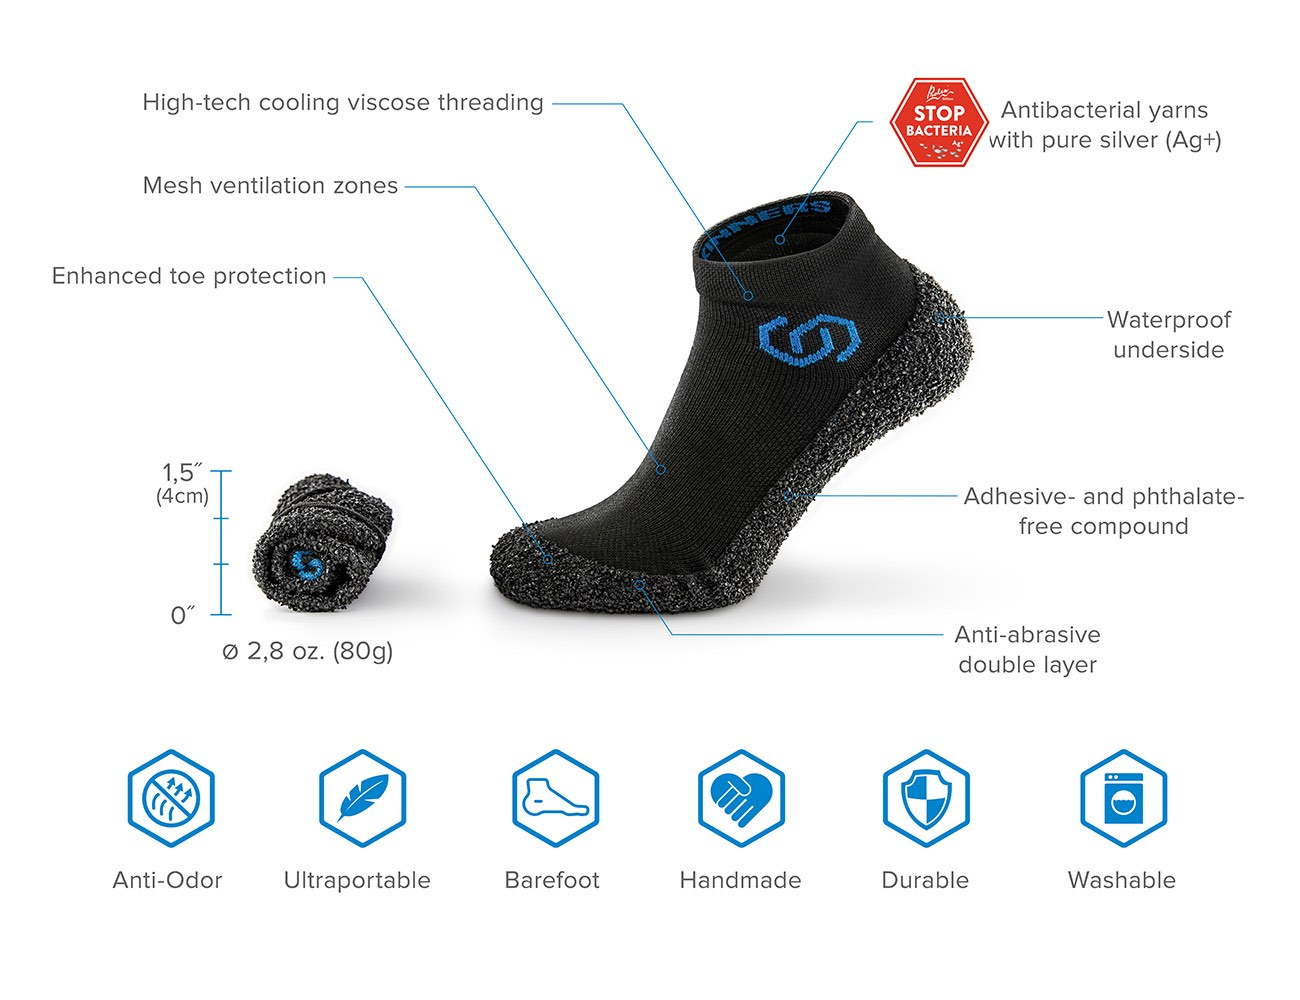 Skinners – Revolutionary Ultraportable Footwear with Silver